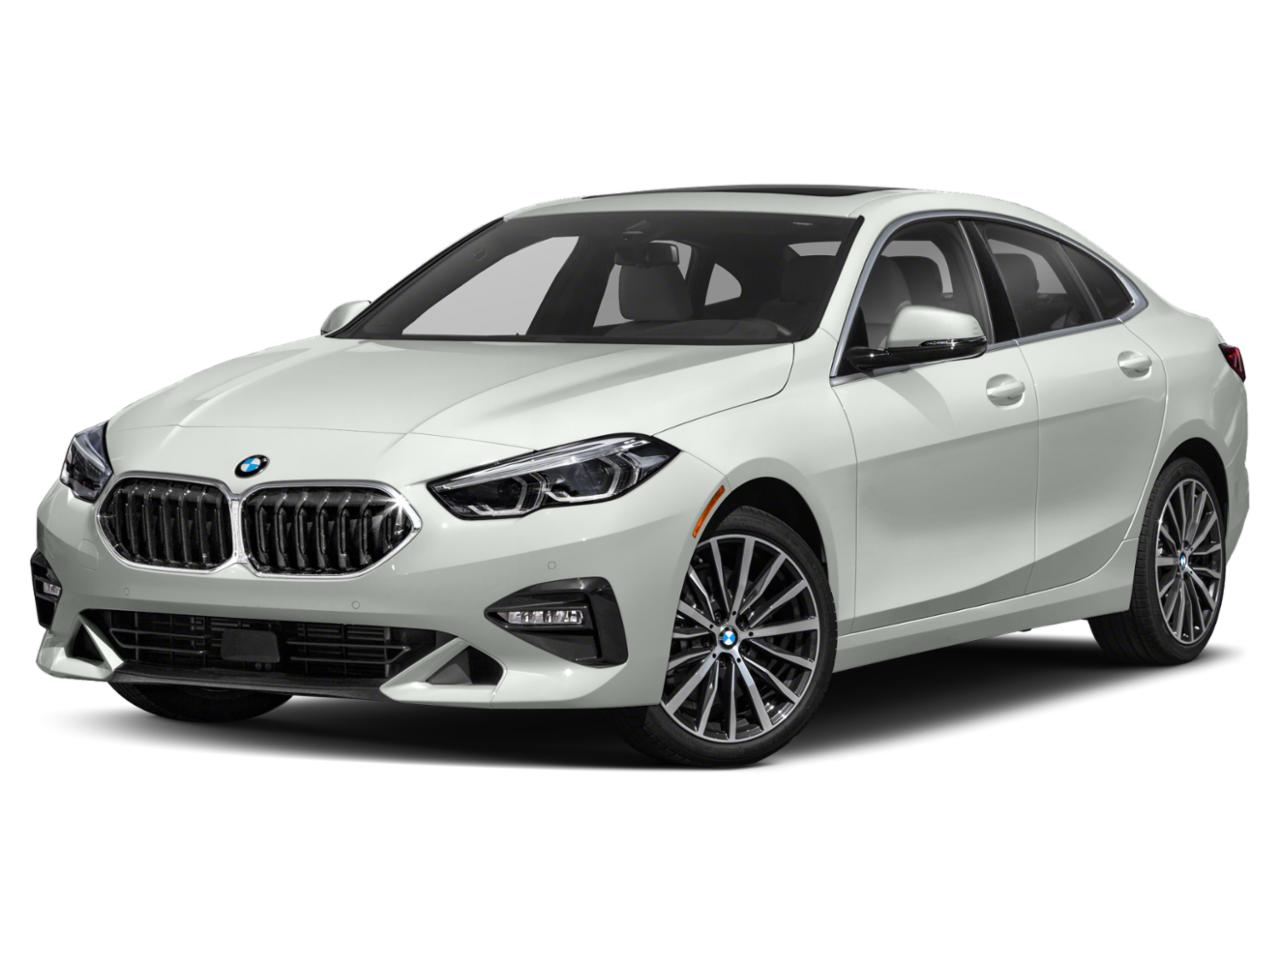 2021 BMW 228i Vehicle Photo in Grapevine, TX 76051